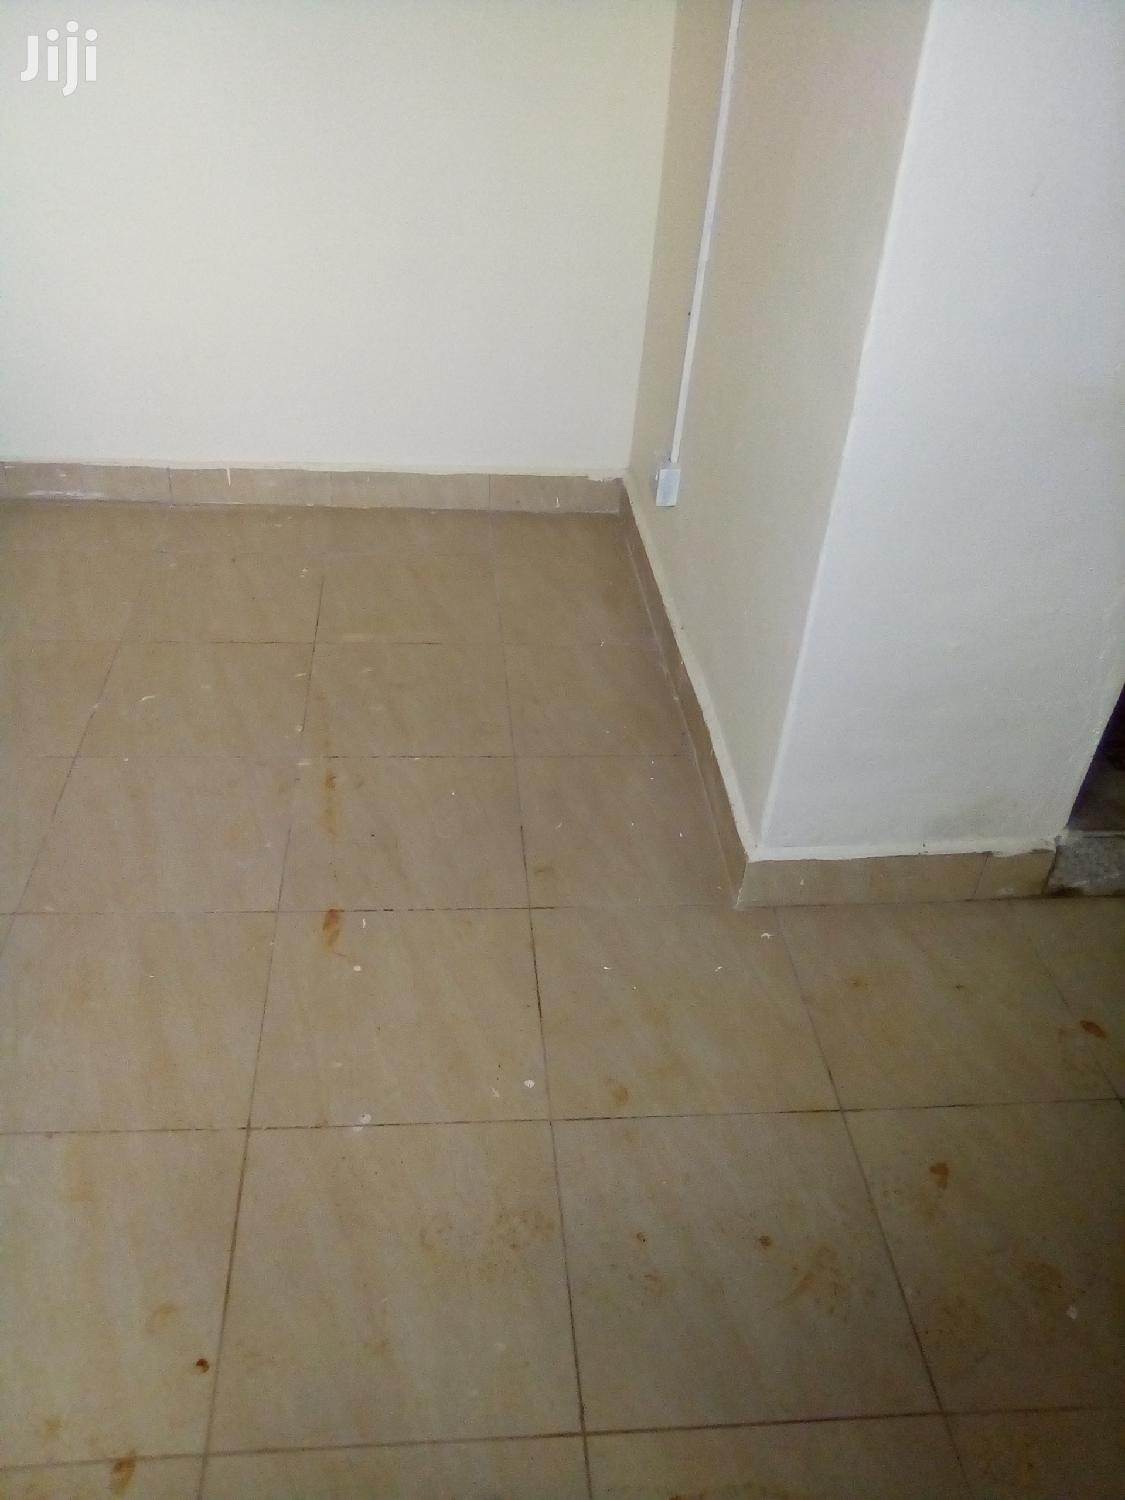 New Single Self Contained Room for Rent in Kitintale | Houses & Apartments For Rent for sale in Kampala, Central Region, Uganda